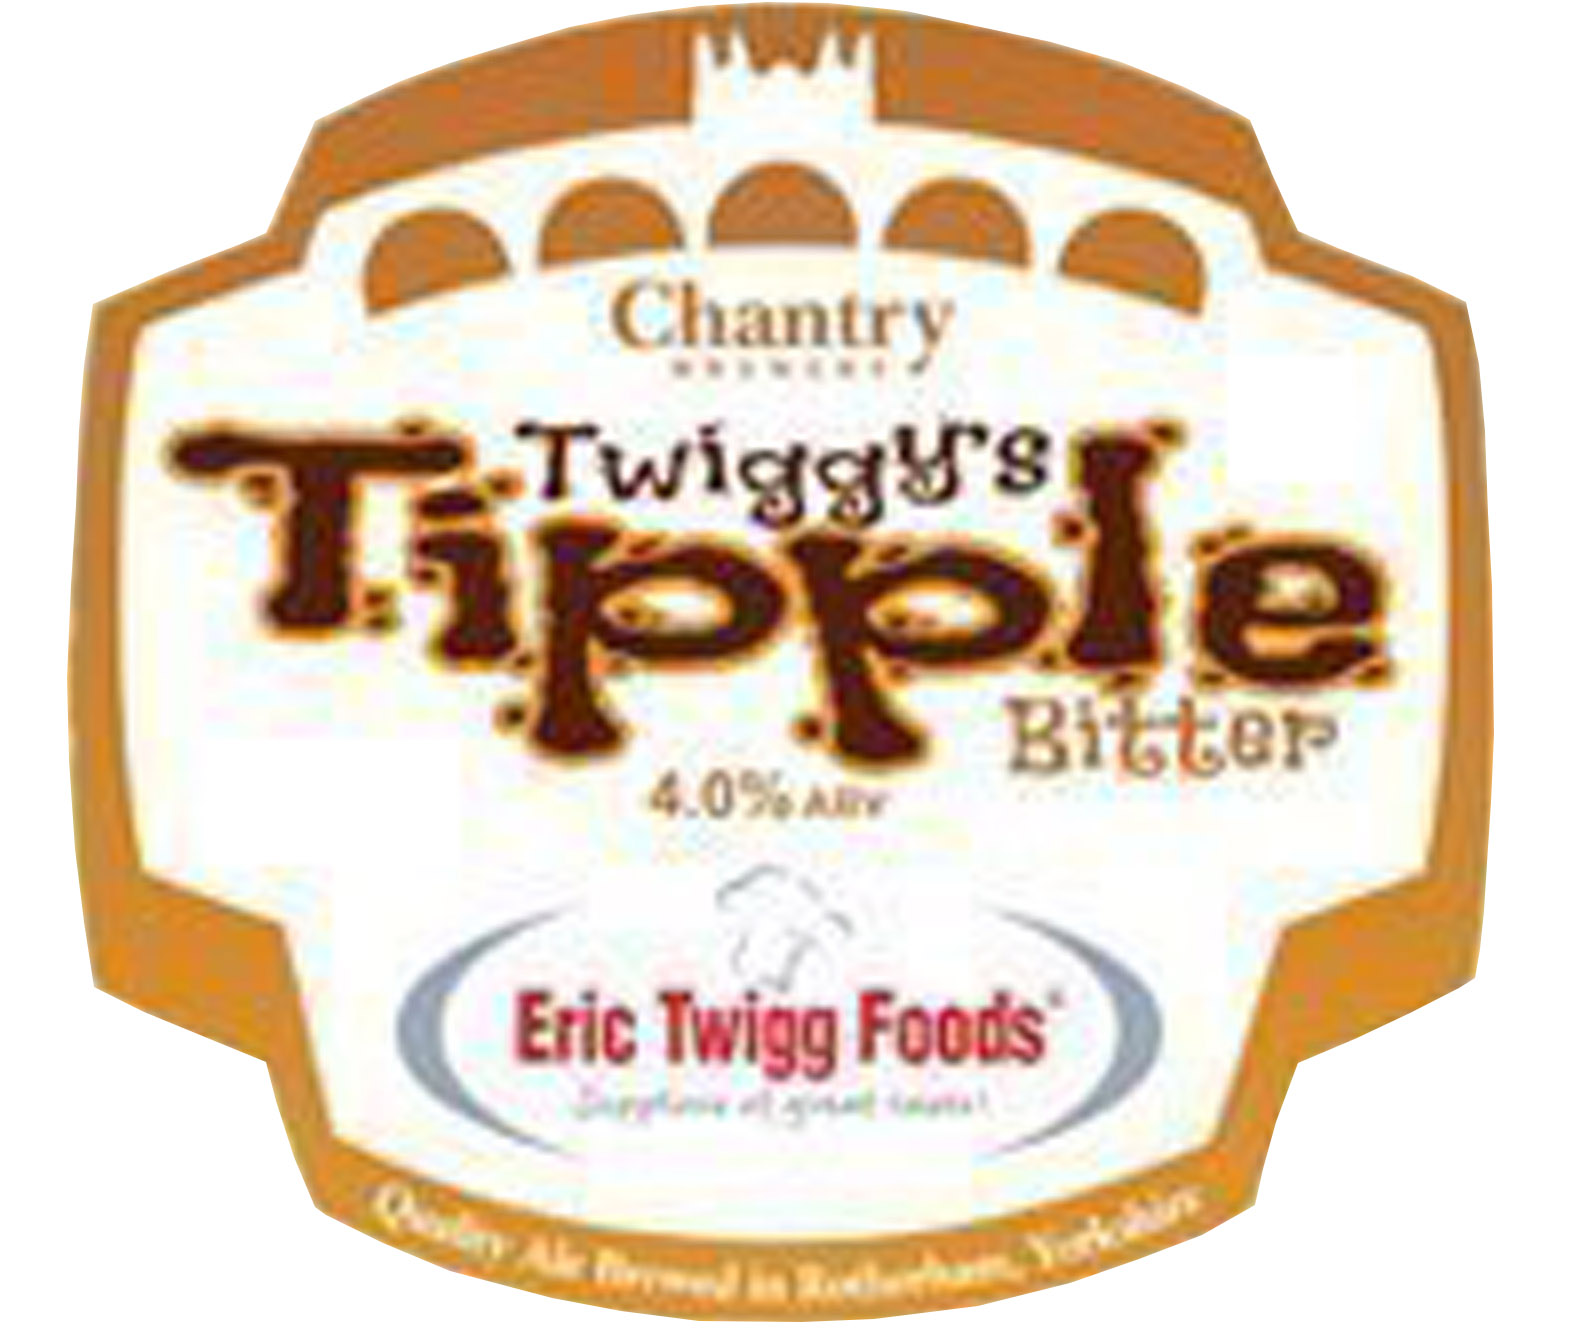 Chantry Brewery Twiggy's Tipple Bitter